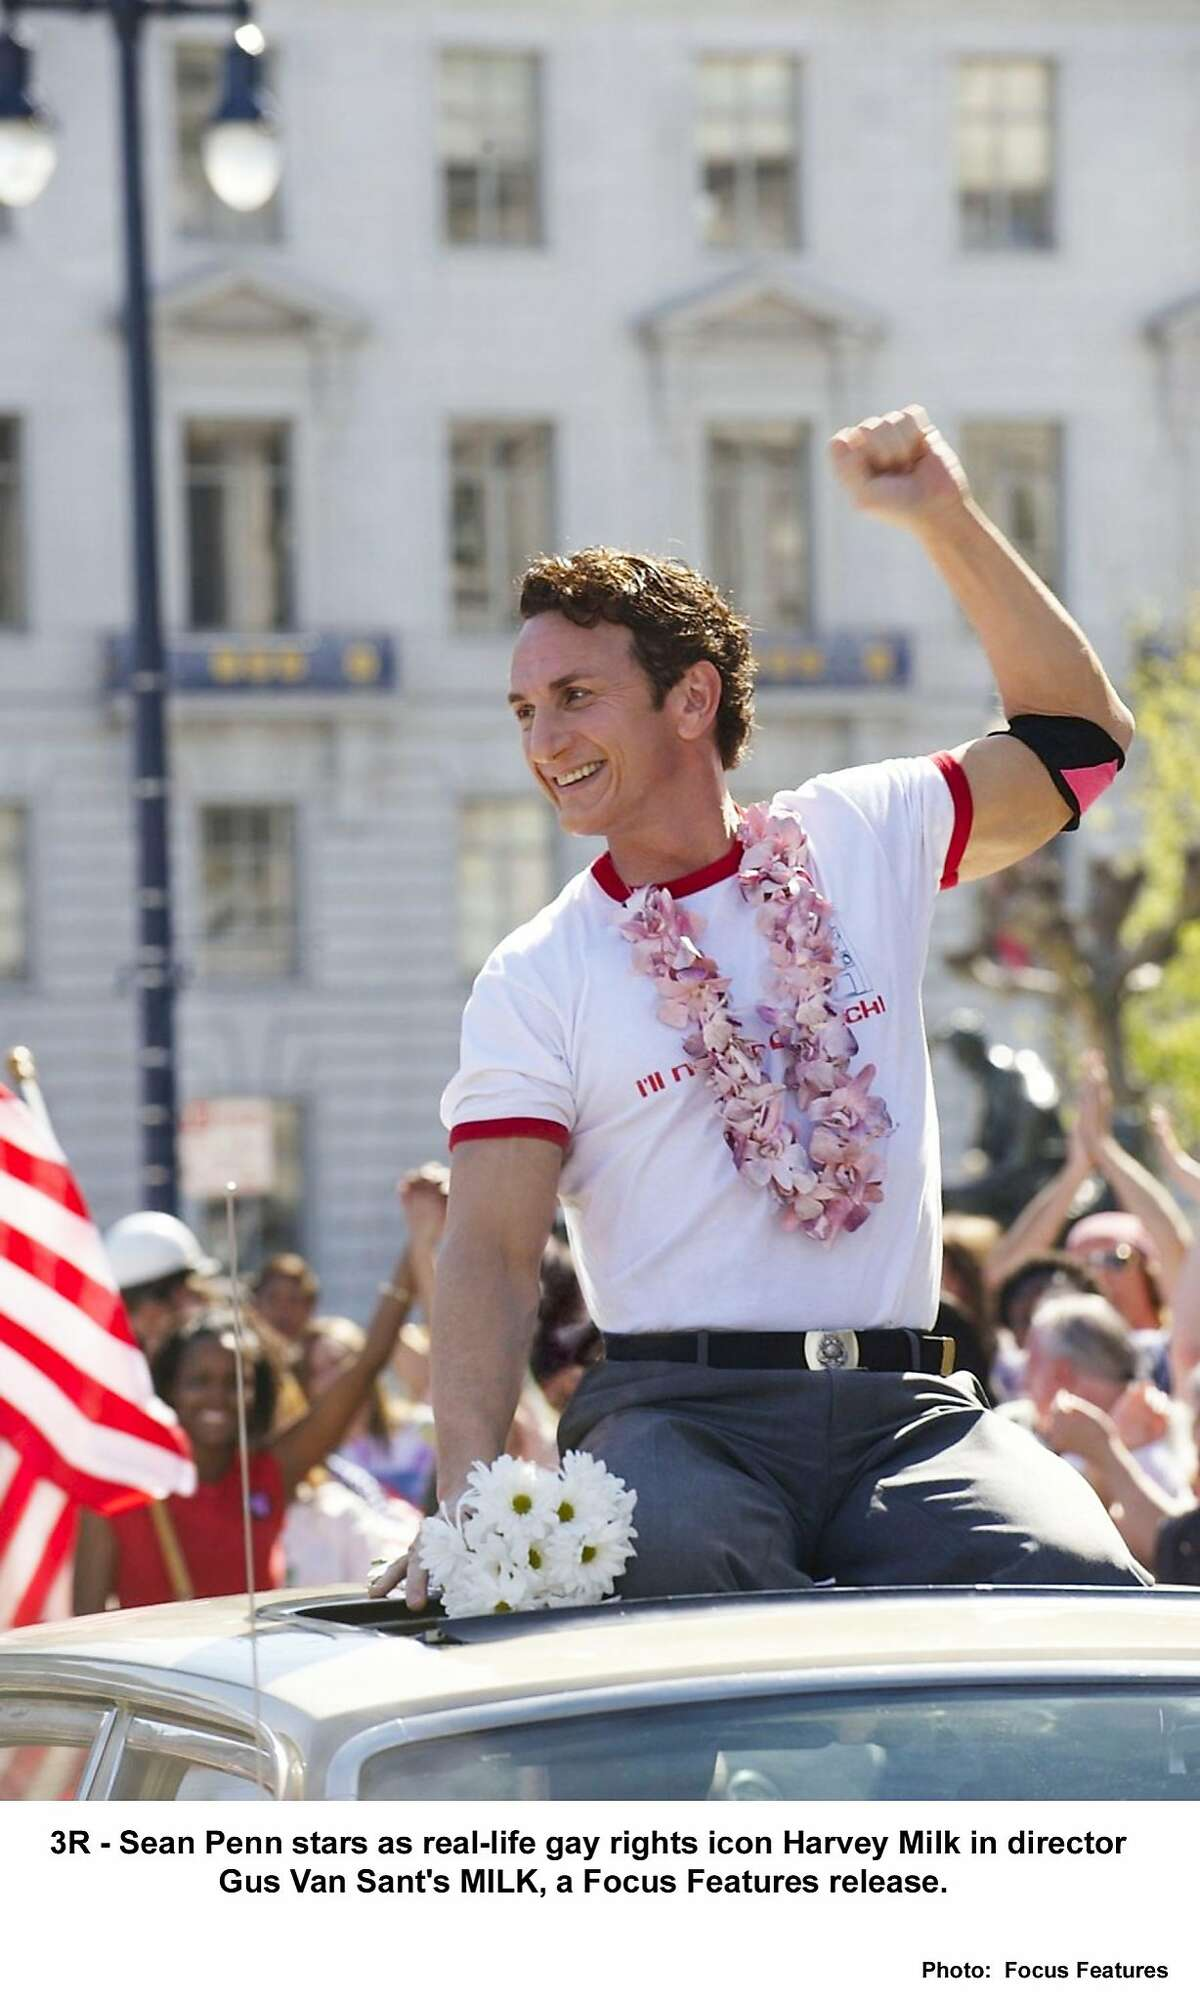 Milk (2008) Leaving Netflix February 15 The story of Harvey Milk, and his struggles as an American gay activist who fought for gay rights and became California's first openly gay elected official.